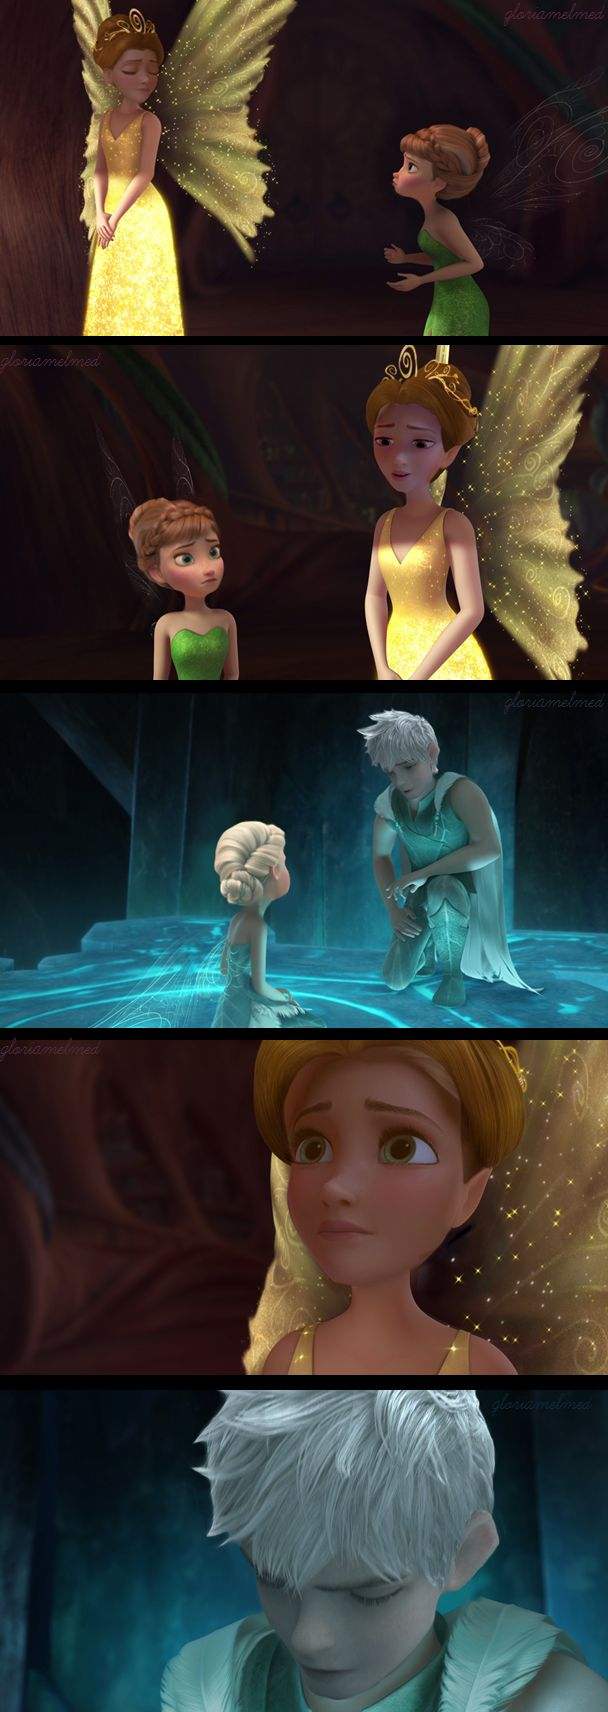 Rapunzel as Queen Clarion, Jack Frost as Lord Milori, Anna as Tinkerbell and Elsa as Periwinkle. I just had a HUGE fangirl moment.